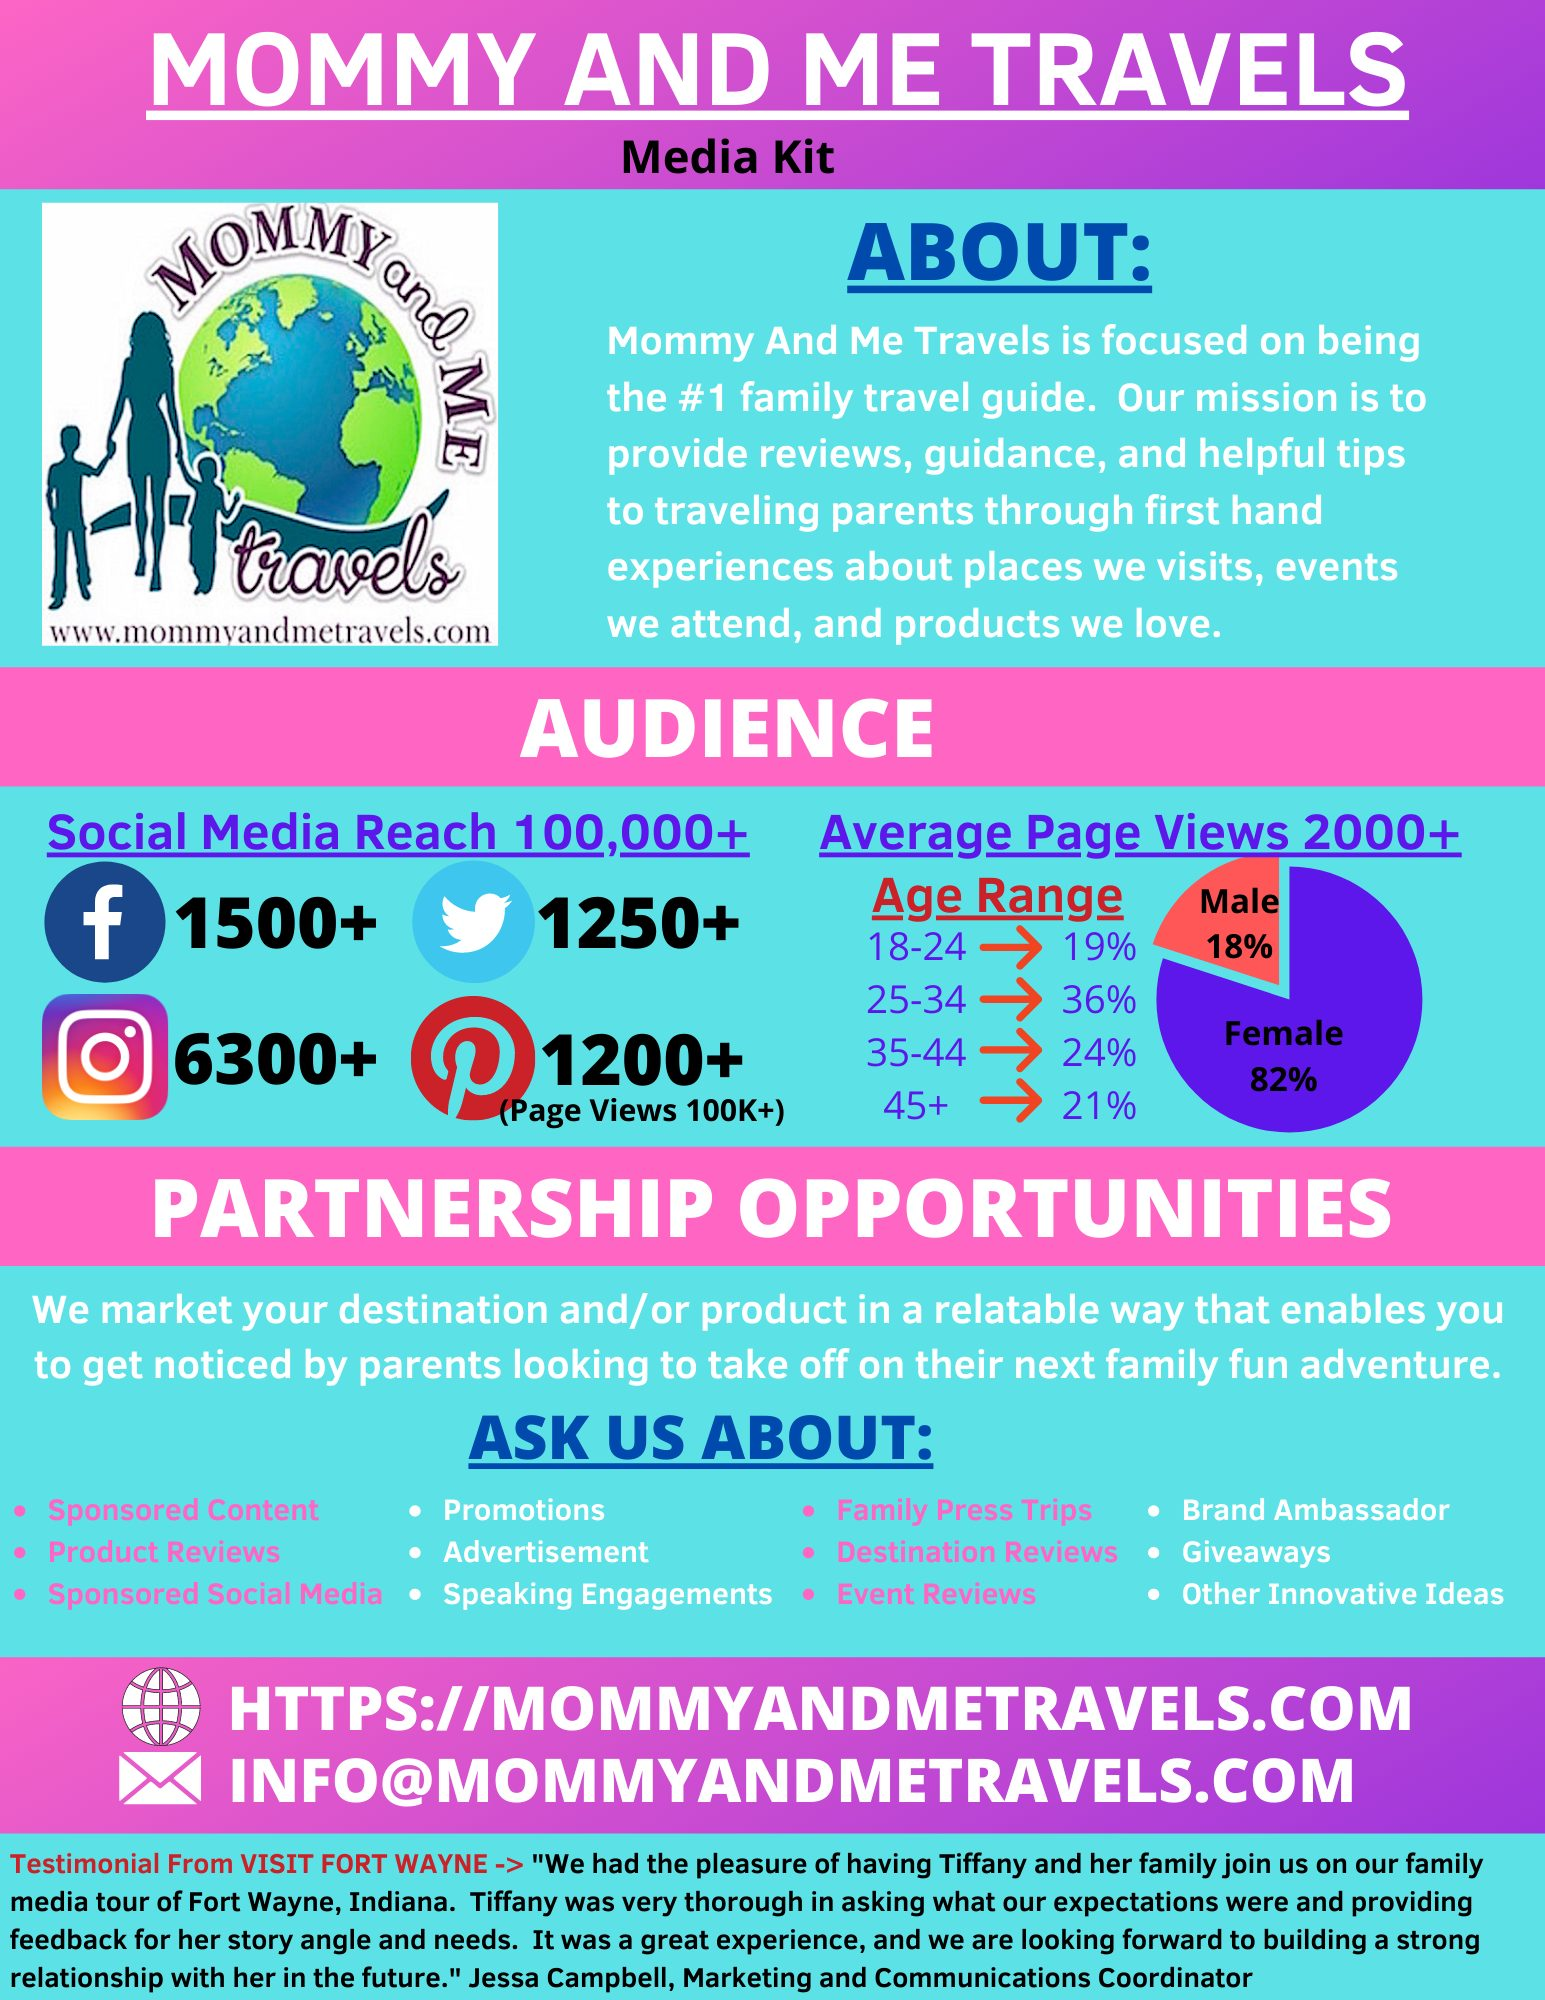 Mommy And Me Travels Media Kit